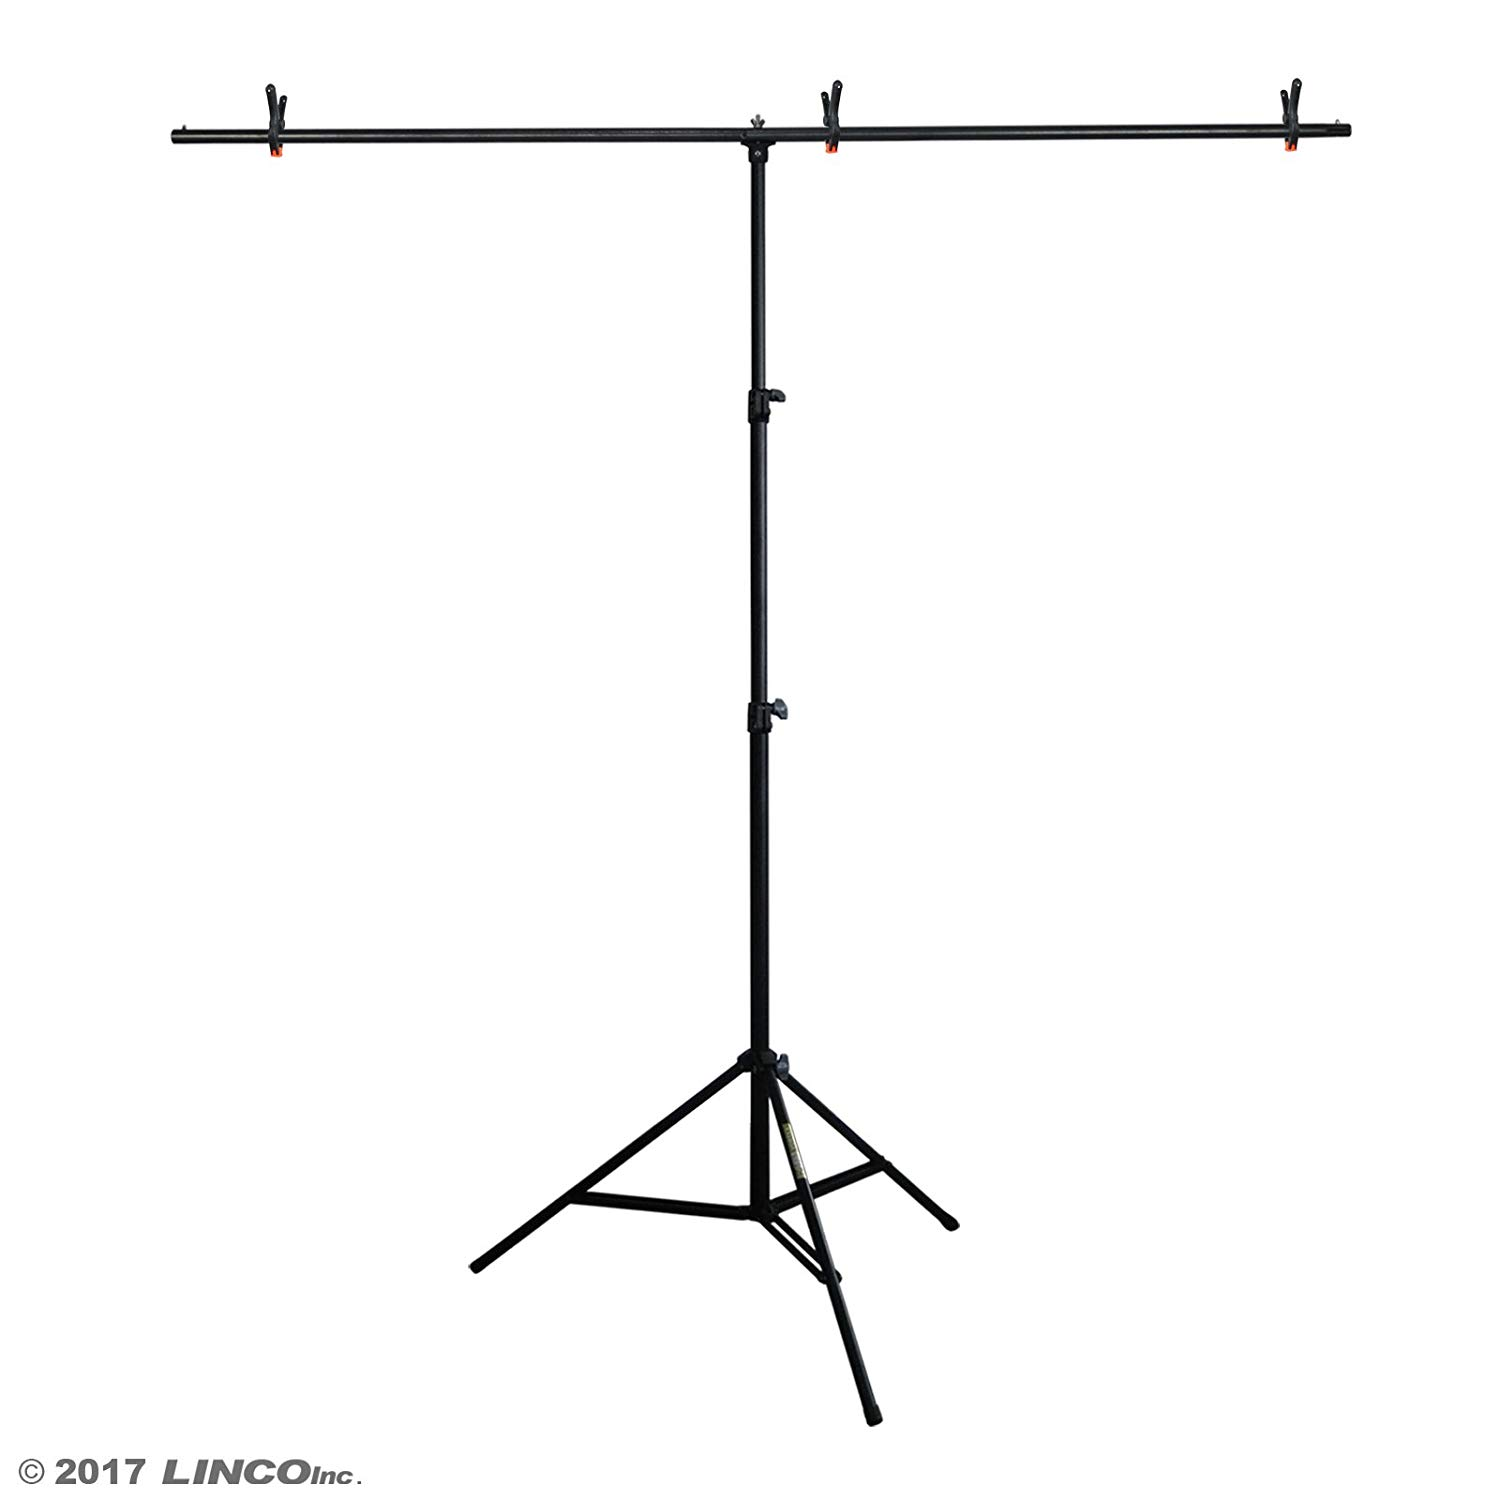 Amazoncom Linco Lincostore Photo Backdrop Stand Background 1500x1500